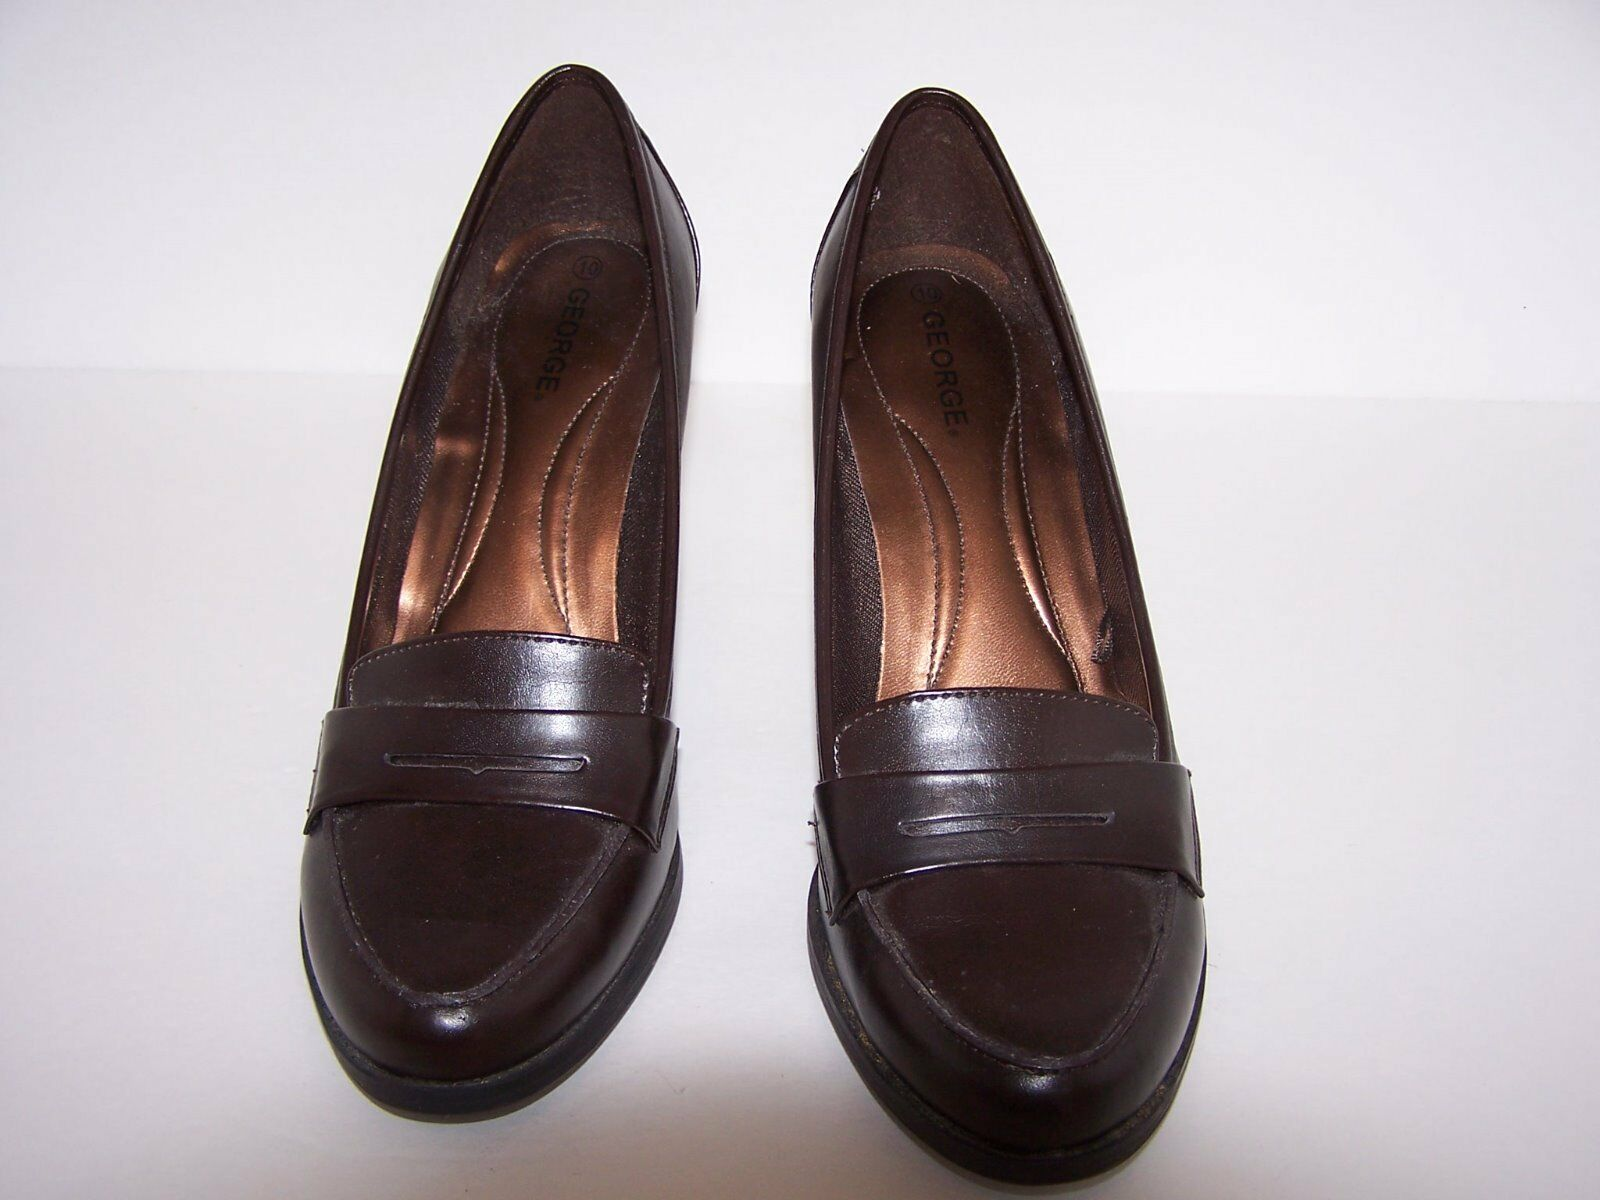 WOMEN'S SIZE BROWN GEORGE PENNYLOAFER HIGH HEEL  SHOES SIZE WOMEN'S 10 M 98% CONDITION f16f18